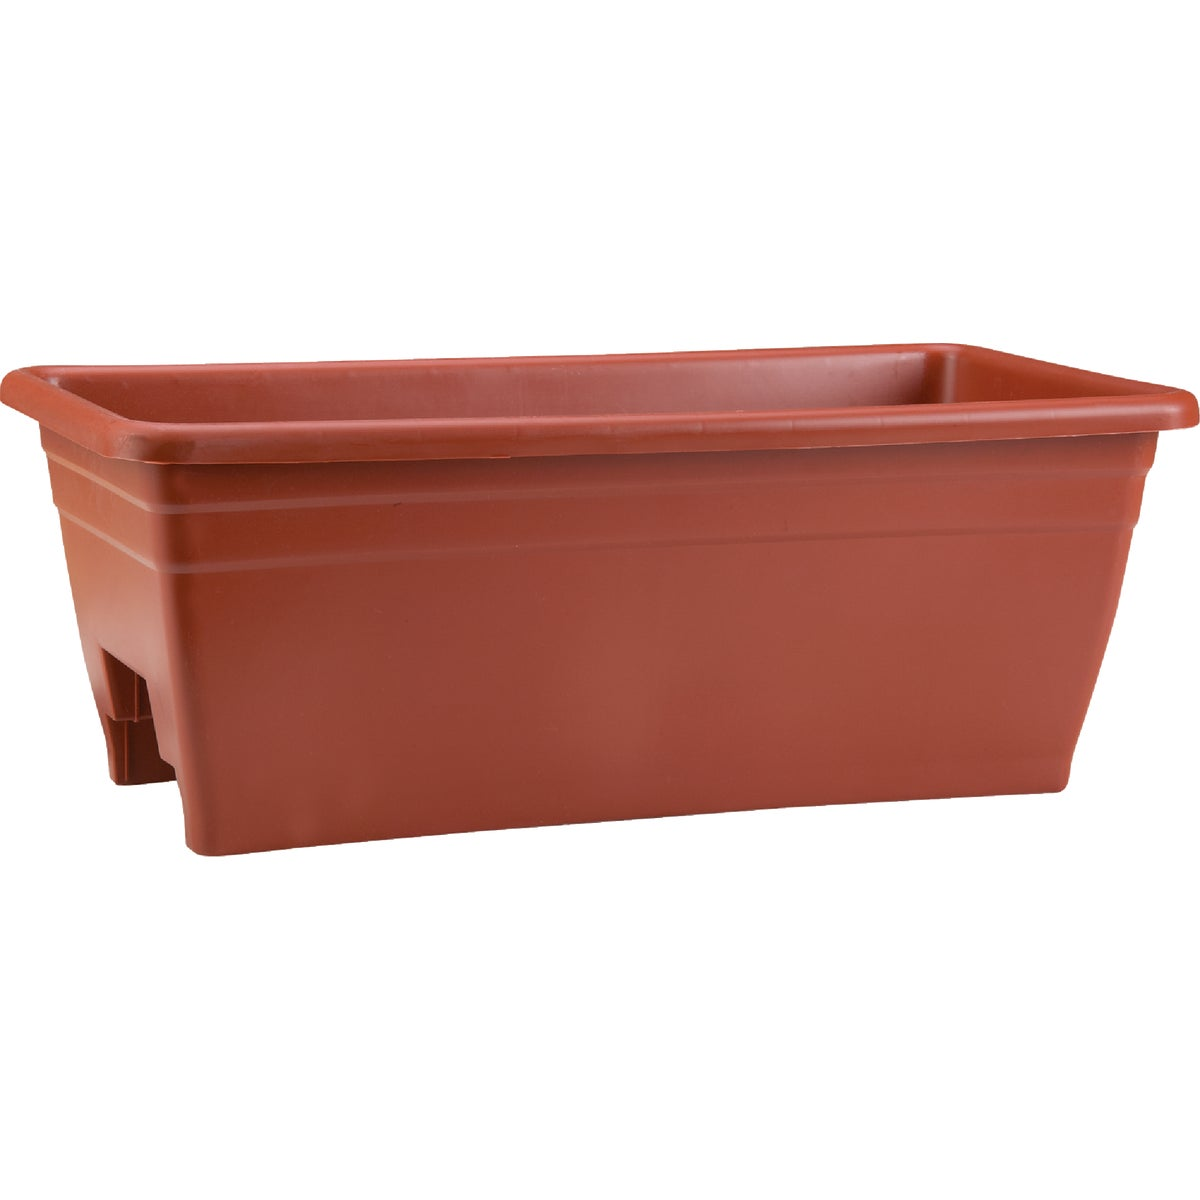 T COTA DECK/RAIL PLANTER - SPX24DBOE24 by Myers Industries Inc